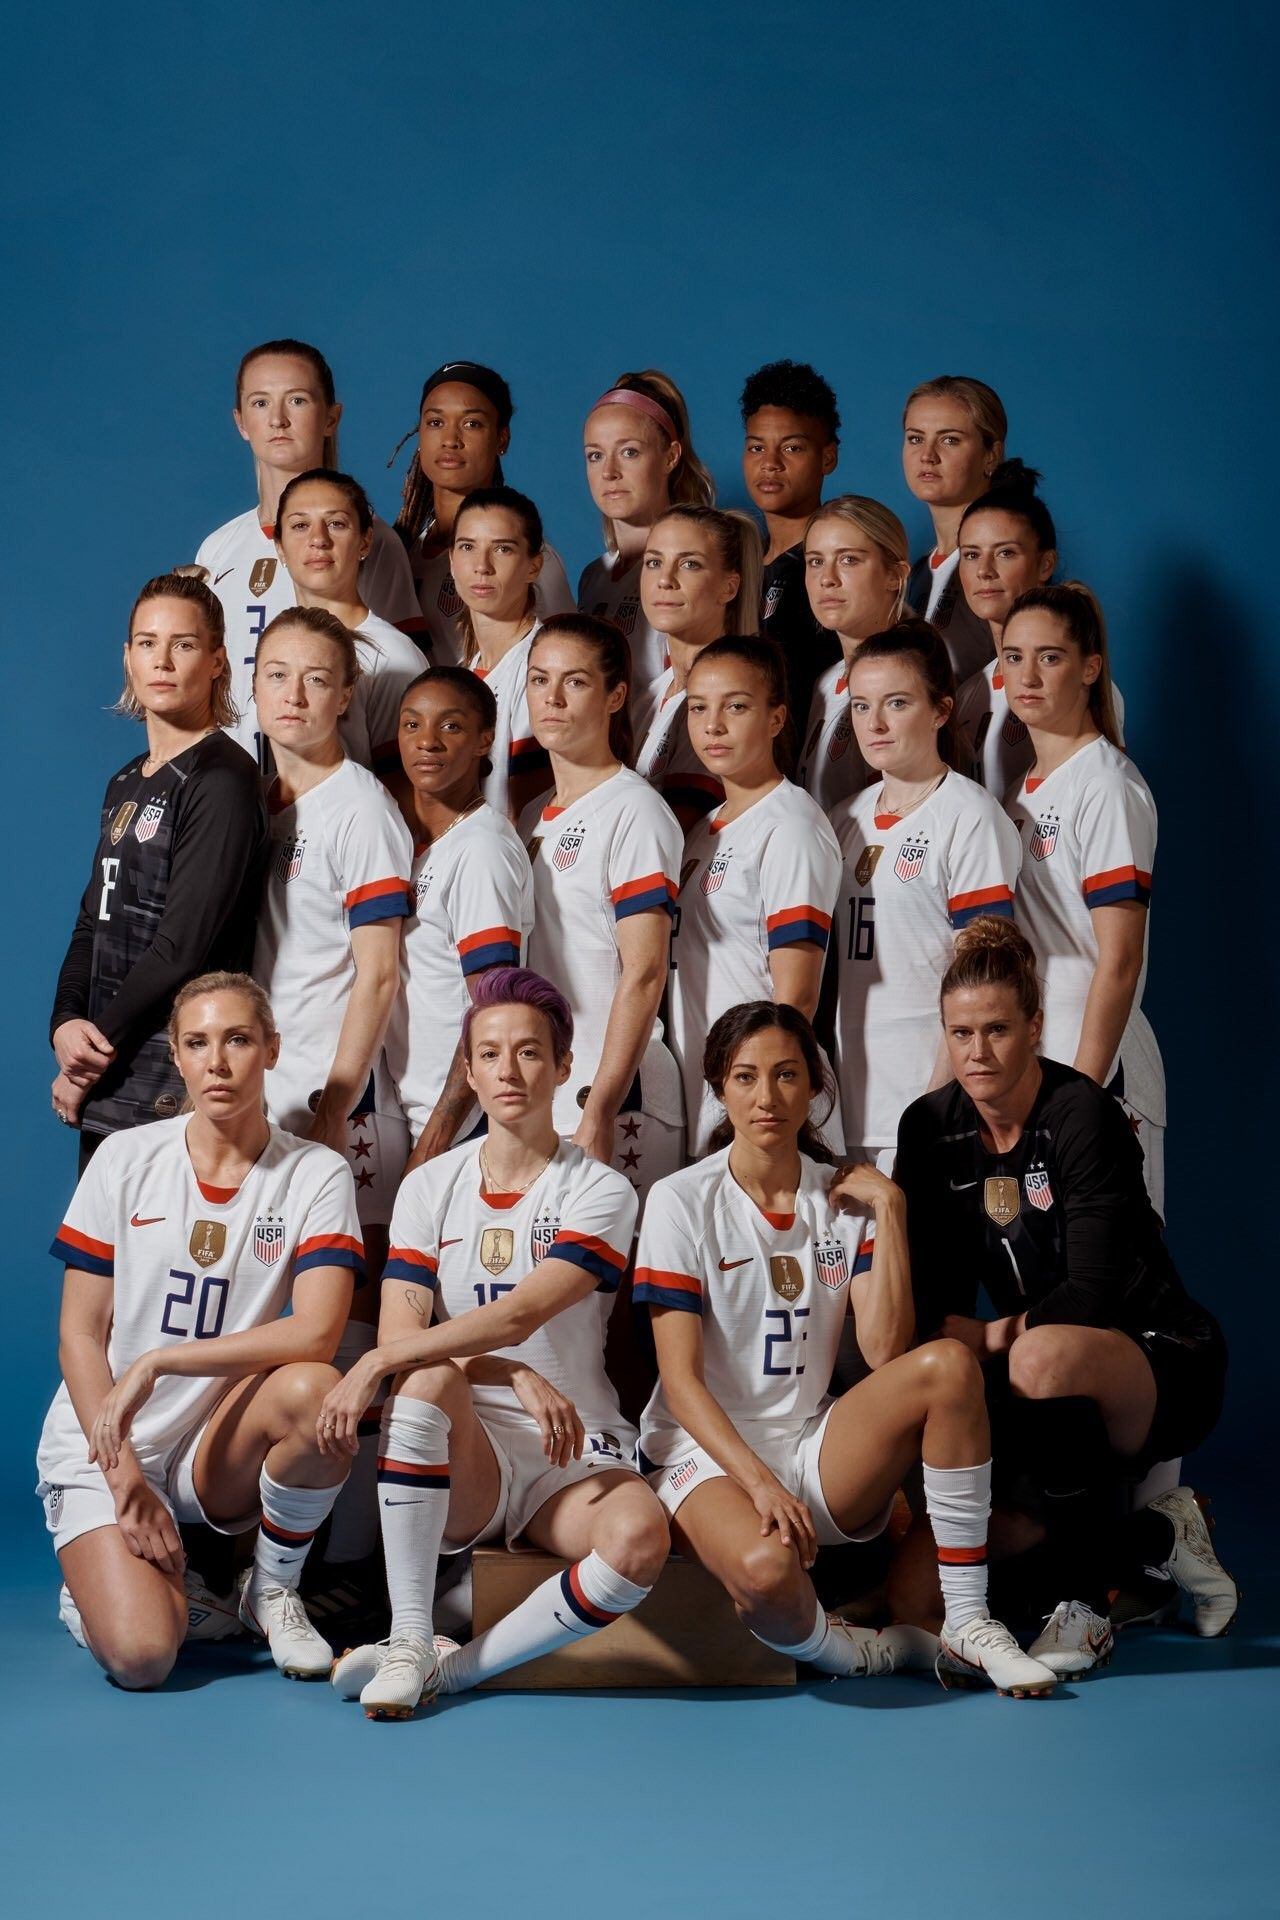 Pin By Ada Herrera On Soccer In 2020 Usa Soccer Women Us Women S National Soccer Team Usa Soccer Team